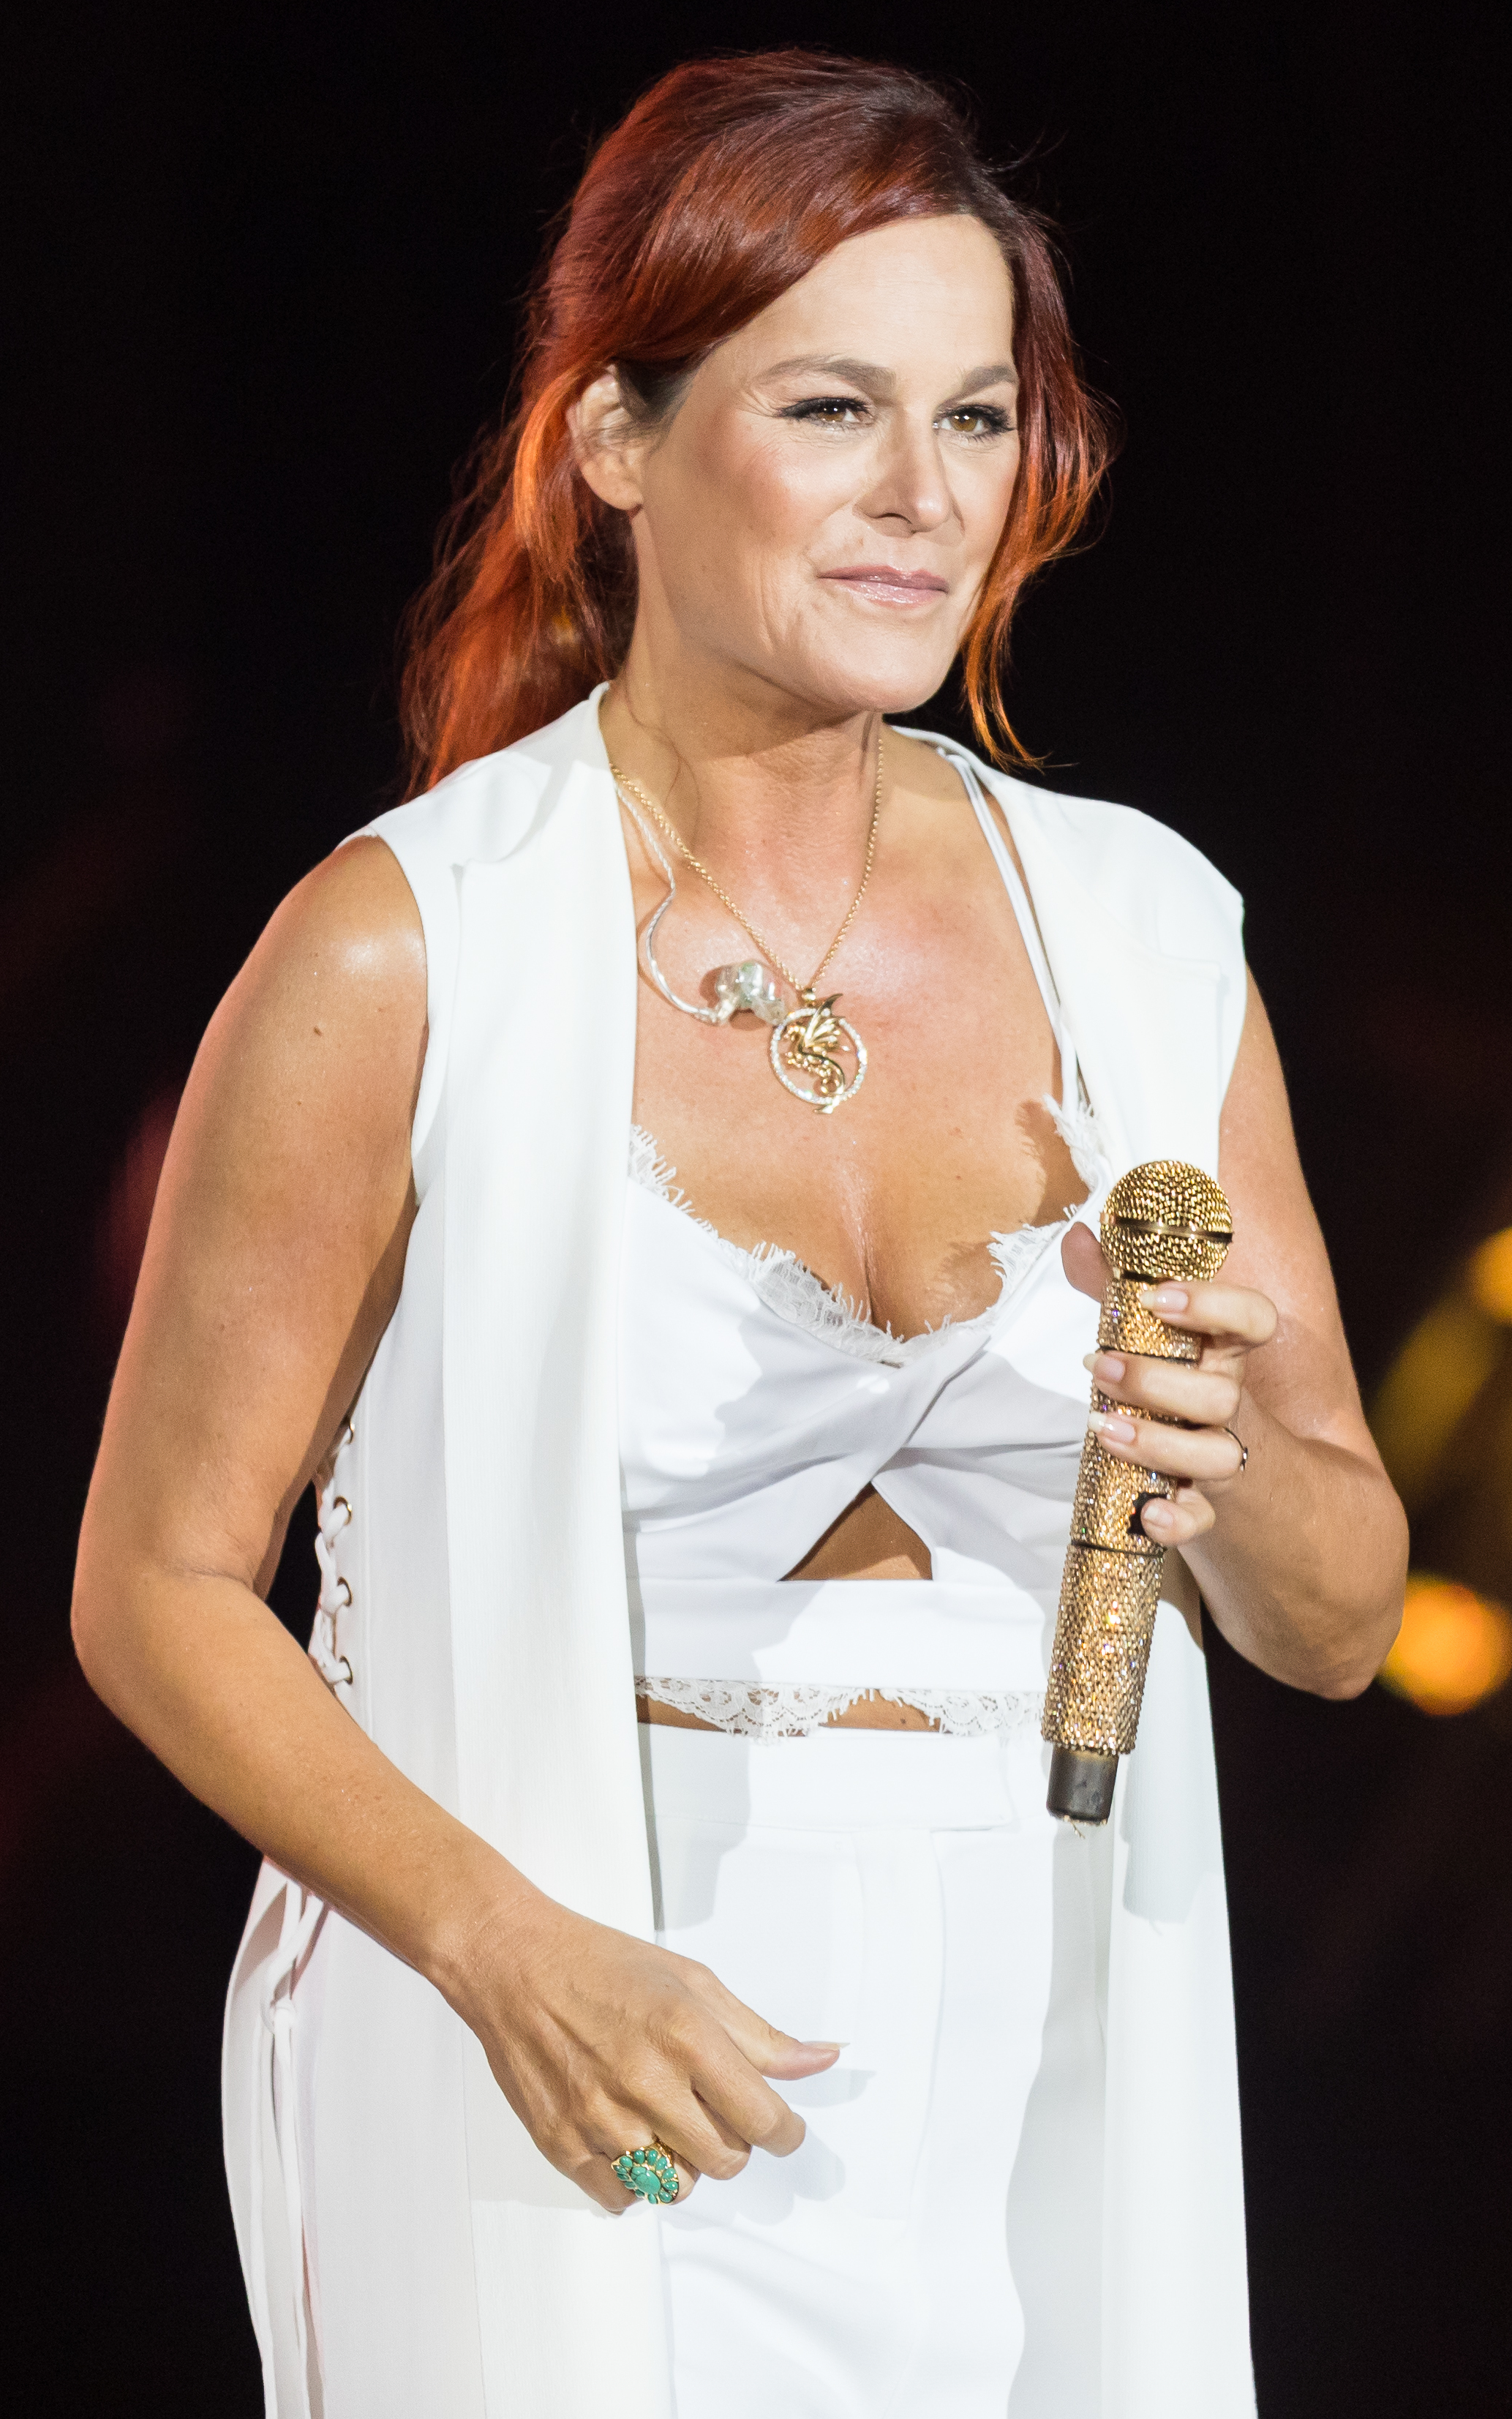 The 54-year old daughter of father (?) and mother(?) Andrea Berg in 2020 photo. Andrea Berg earned a million dollar salary - leaving the net worth at 20 million in 2020